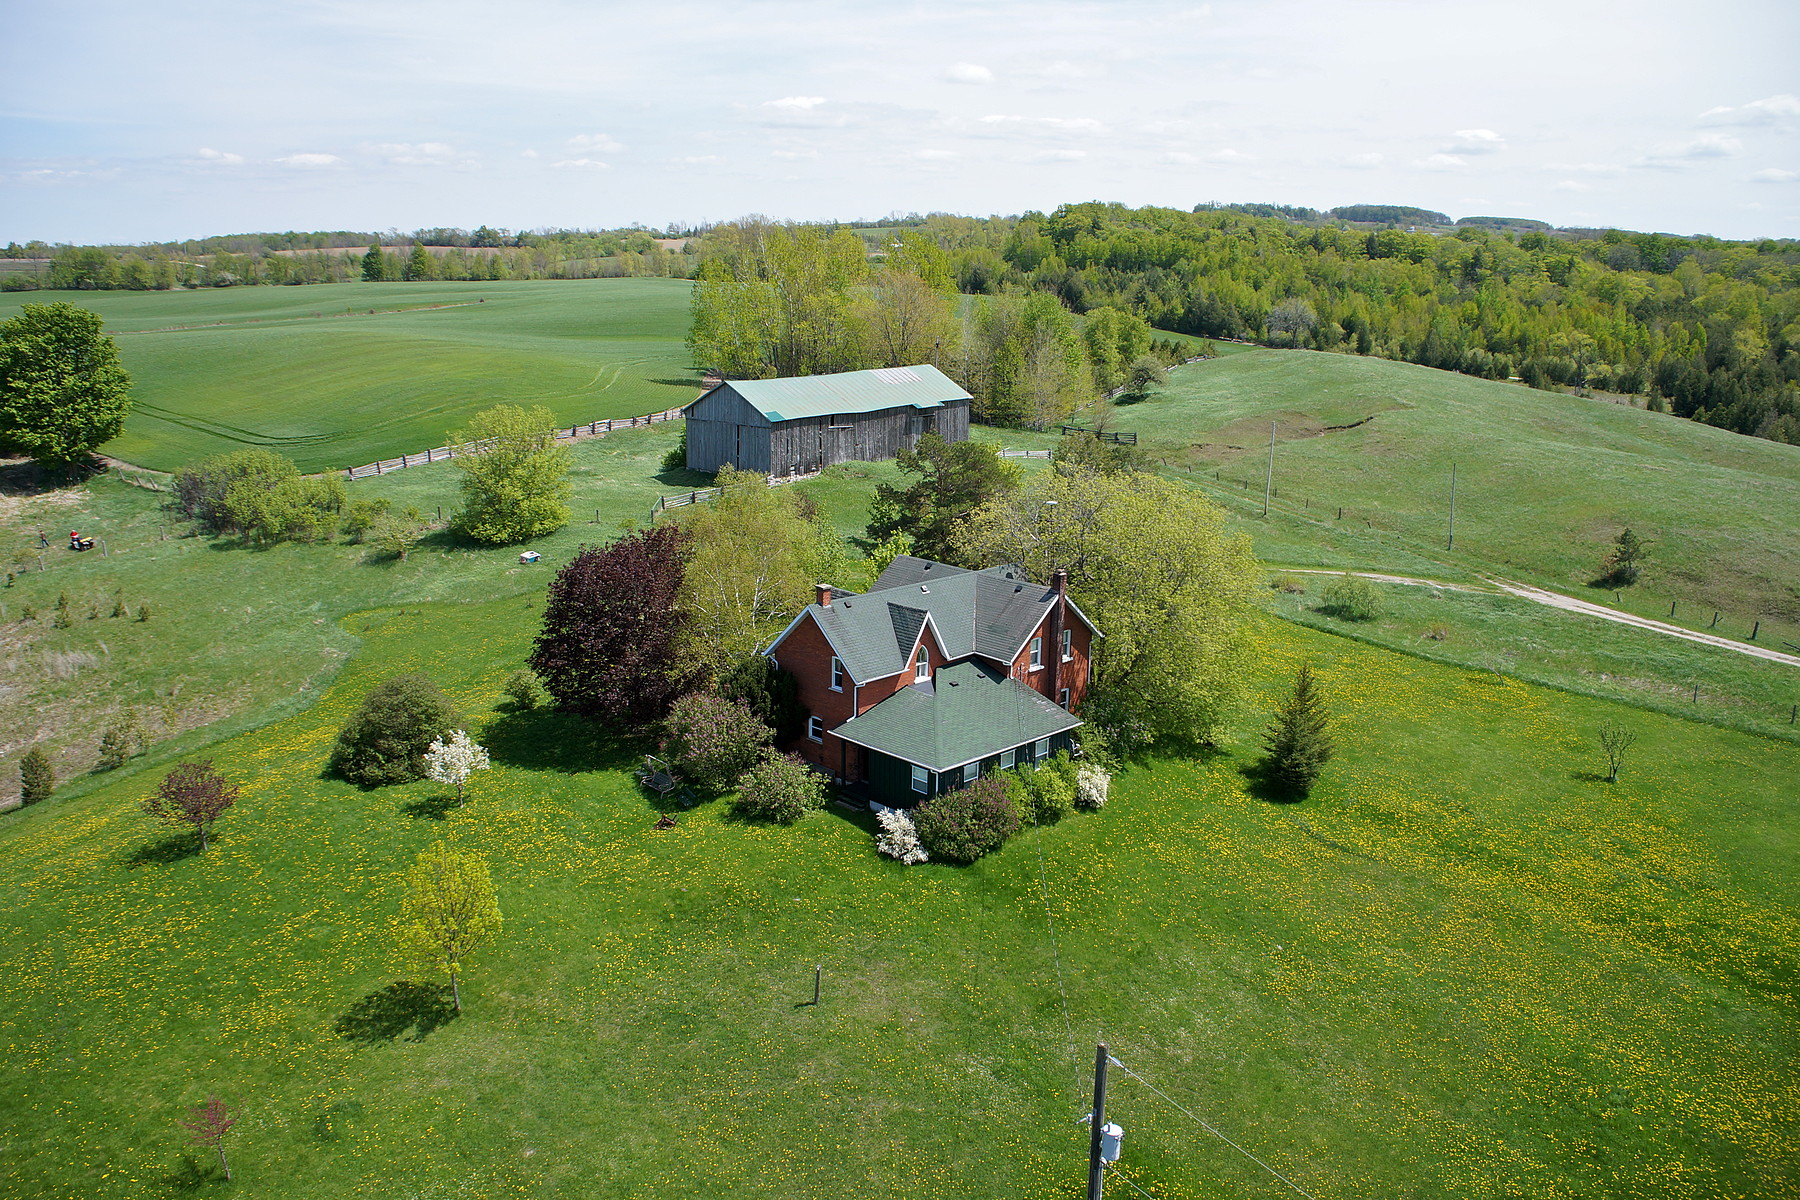 Single Family Home for Sale at Charming Farm House 1553 - 6 Nottawasaga Con S Clearview, Ontario, L0M1G0 Canada